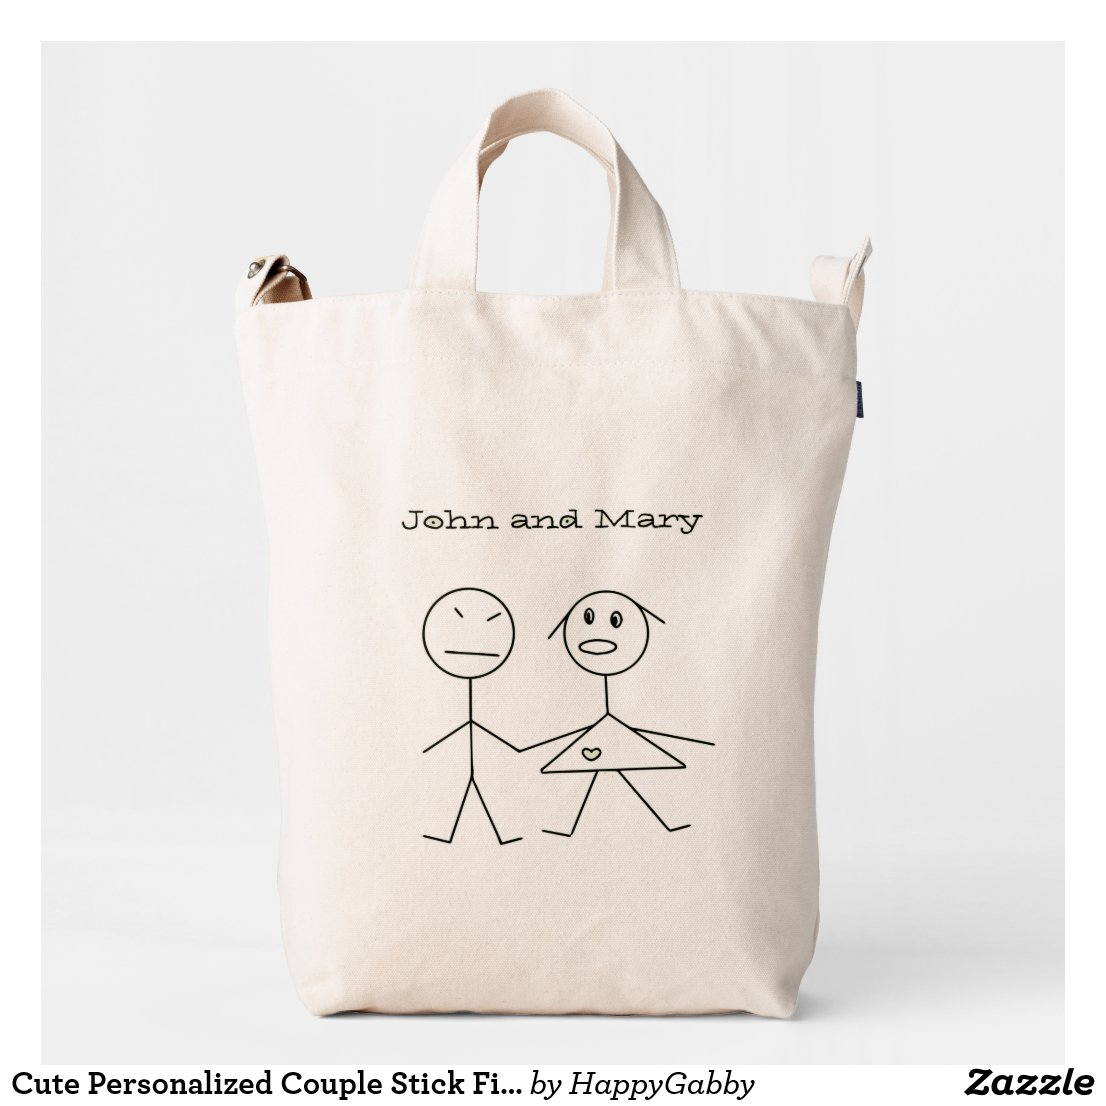 Fun Personalized Couple Stick Figure Duck Bag